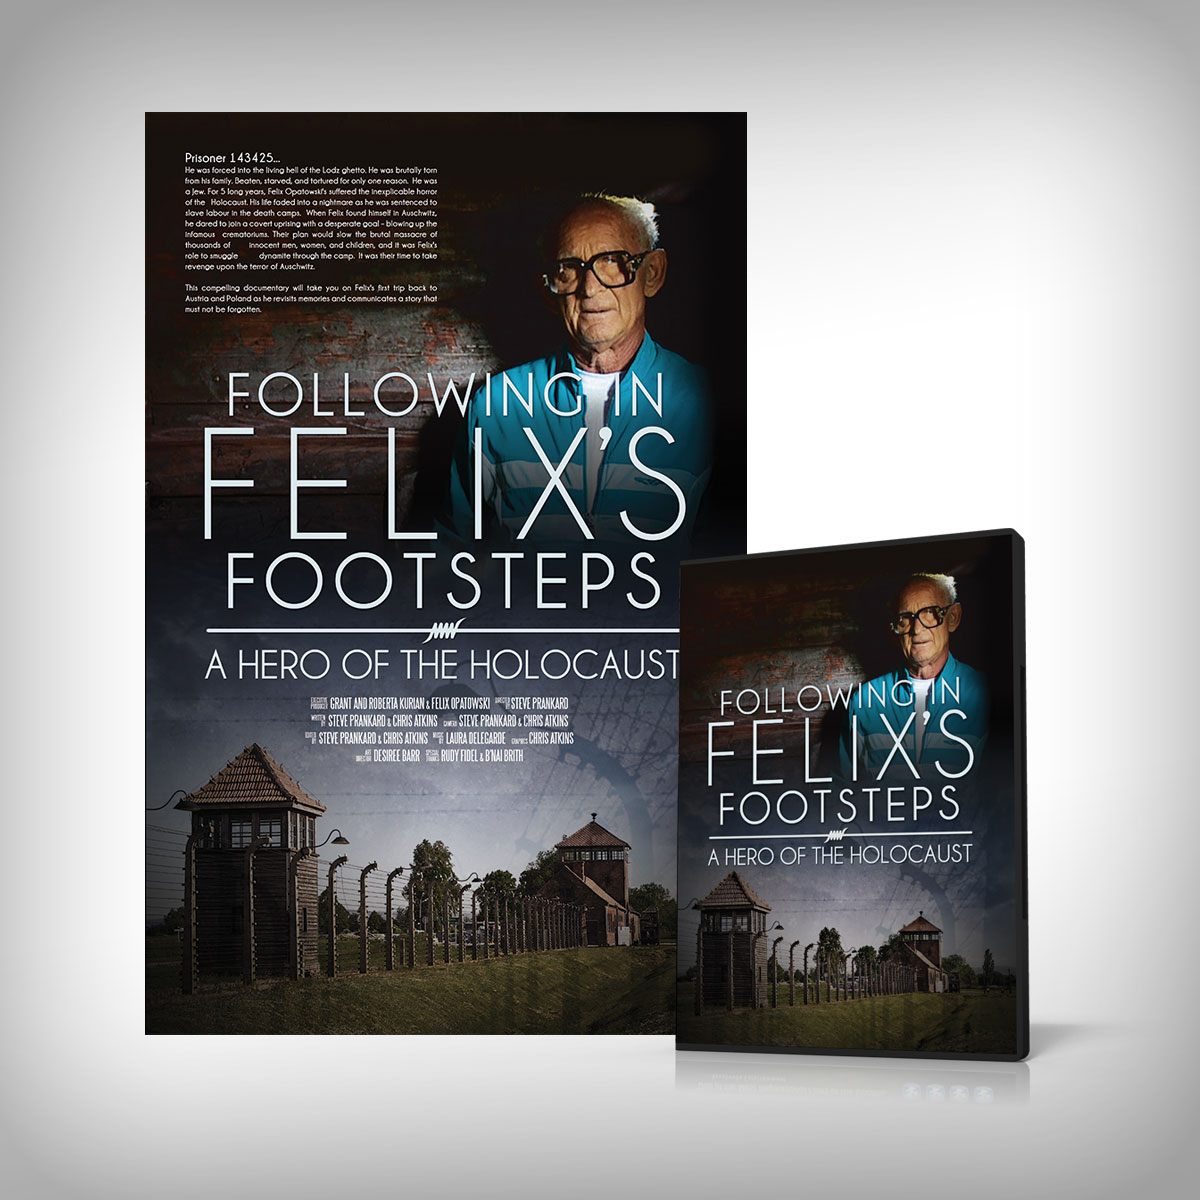 Following in Felix's Footsteps Poster and DVD Cover